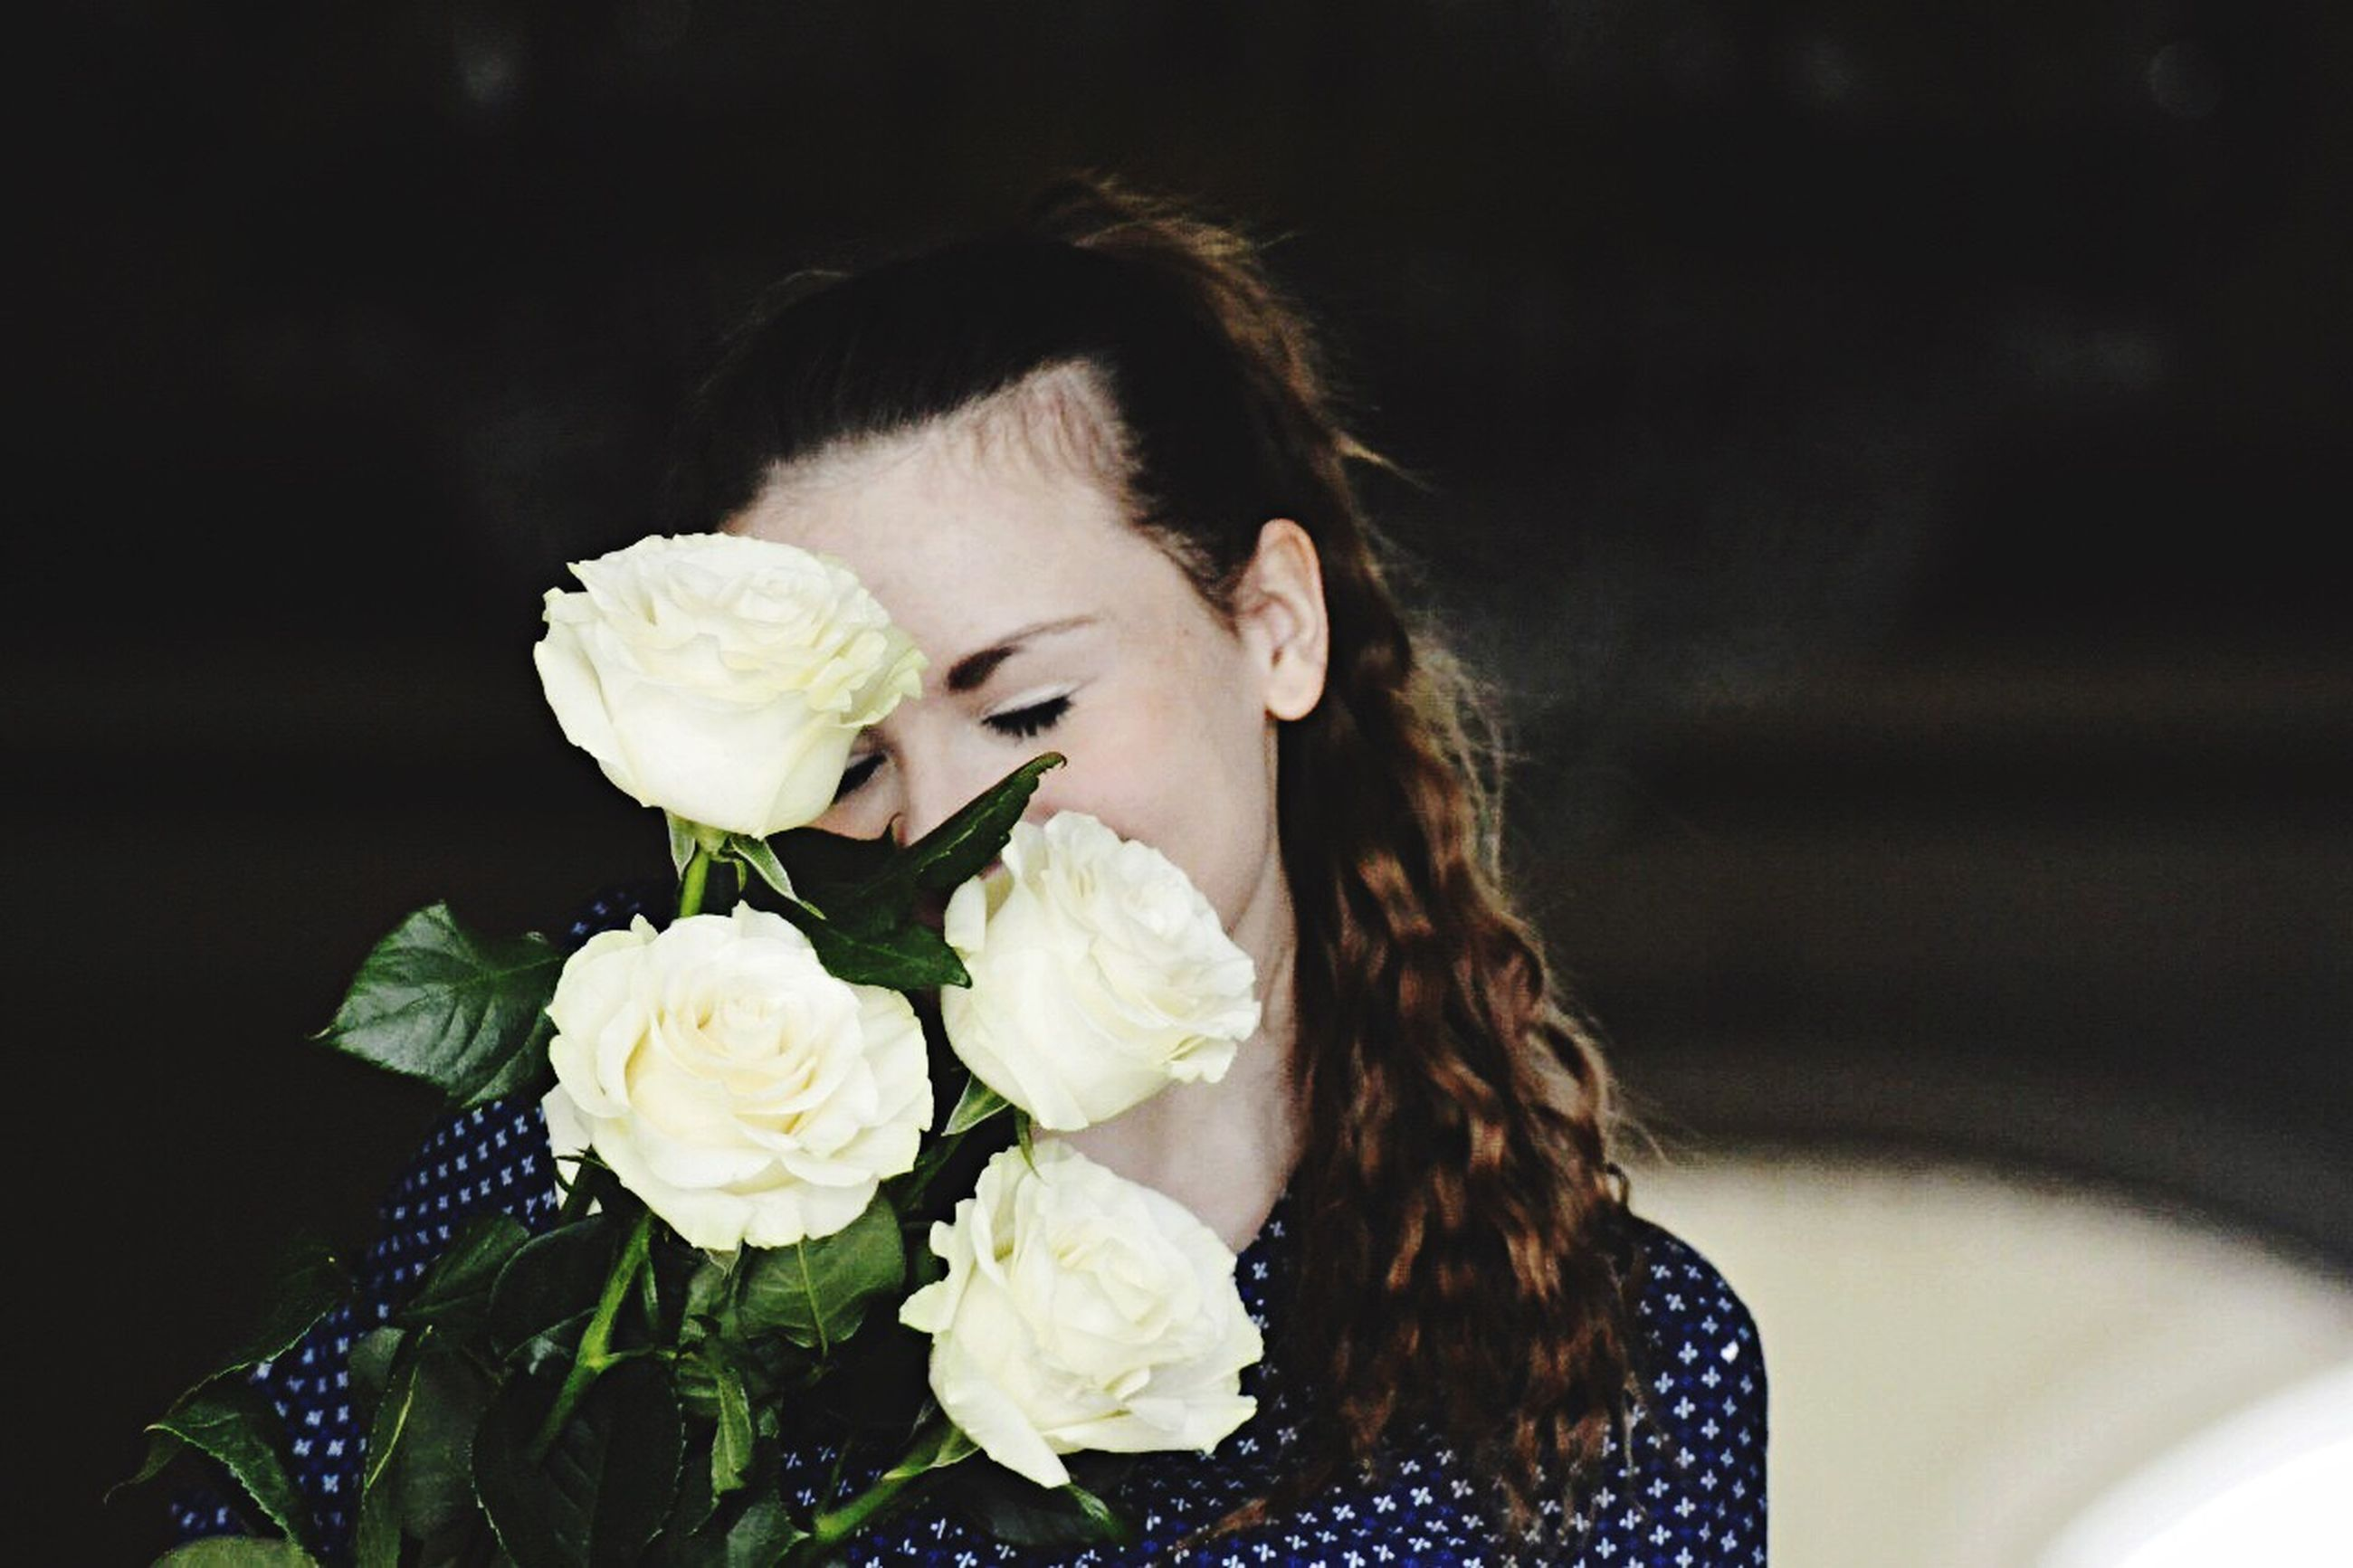 flower, freshness, fragility, petal, flower head, focus on foreground, holding, indoors, lifestyles, close-up, white color, rose - flower, leisure activity, bunch of flowers, bouquet, blooming, casual clothing, nature